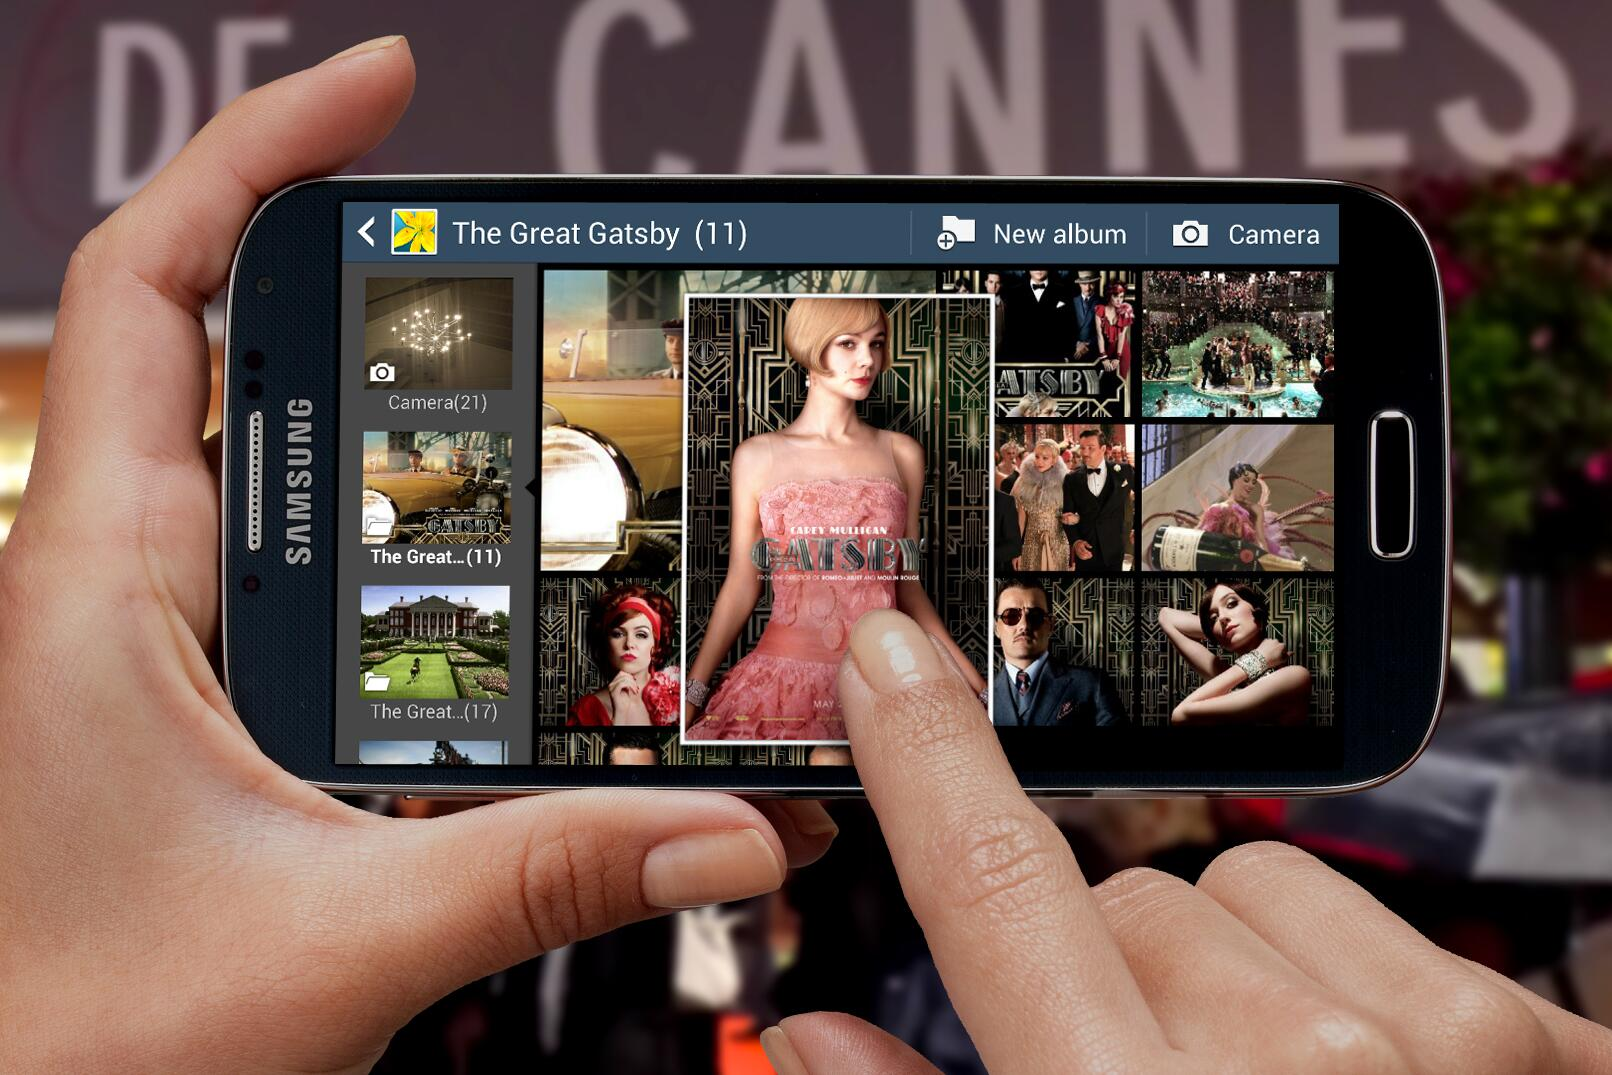 Re-living the excitement of #Cannes2013 and the @GatsbyMovie premiere with #AirView on the #GALAXYS4. http://t.co/581d2d3xD5